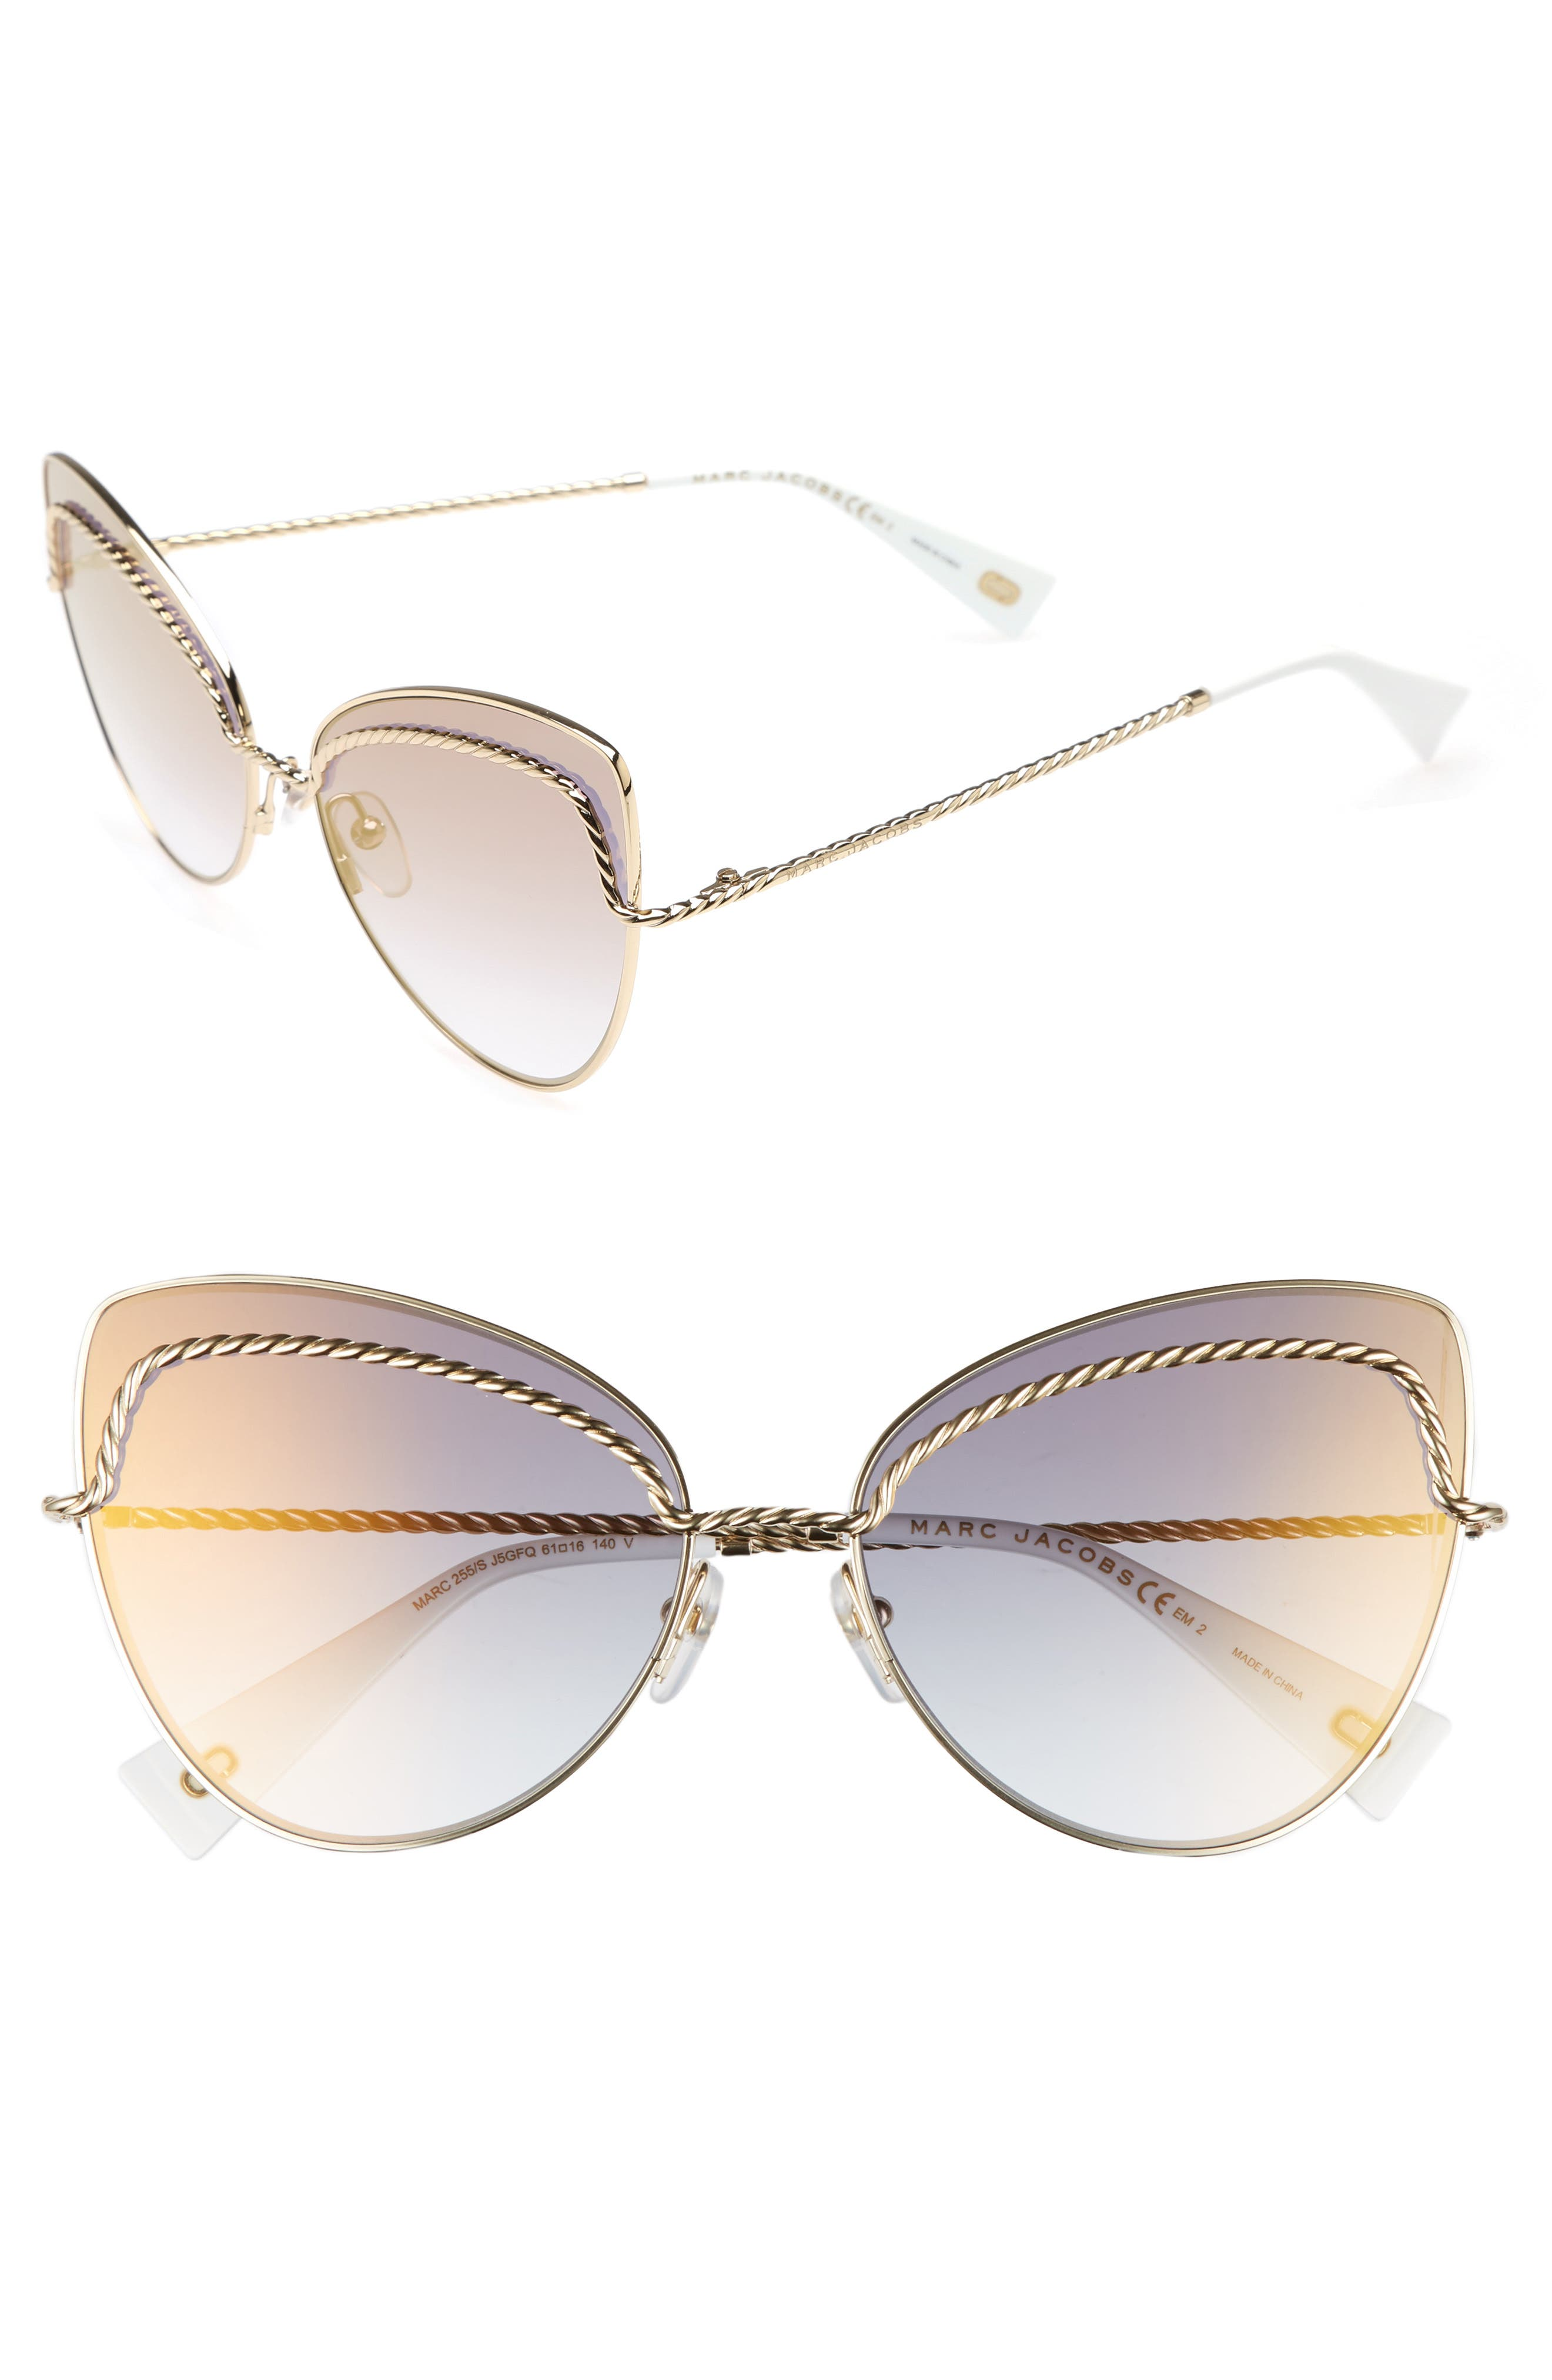 MARC JACOBS 61mm Butterfly Sunglasses